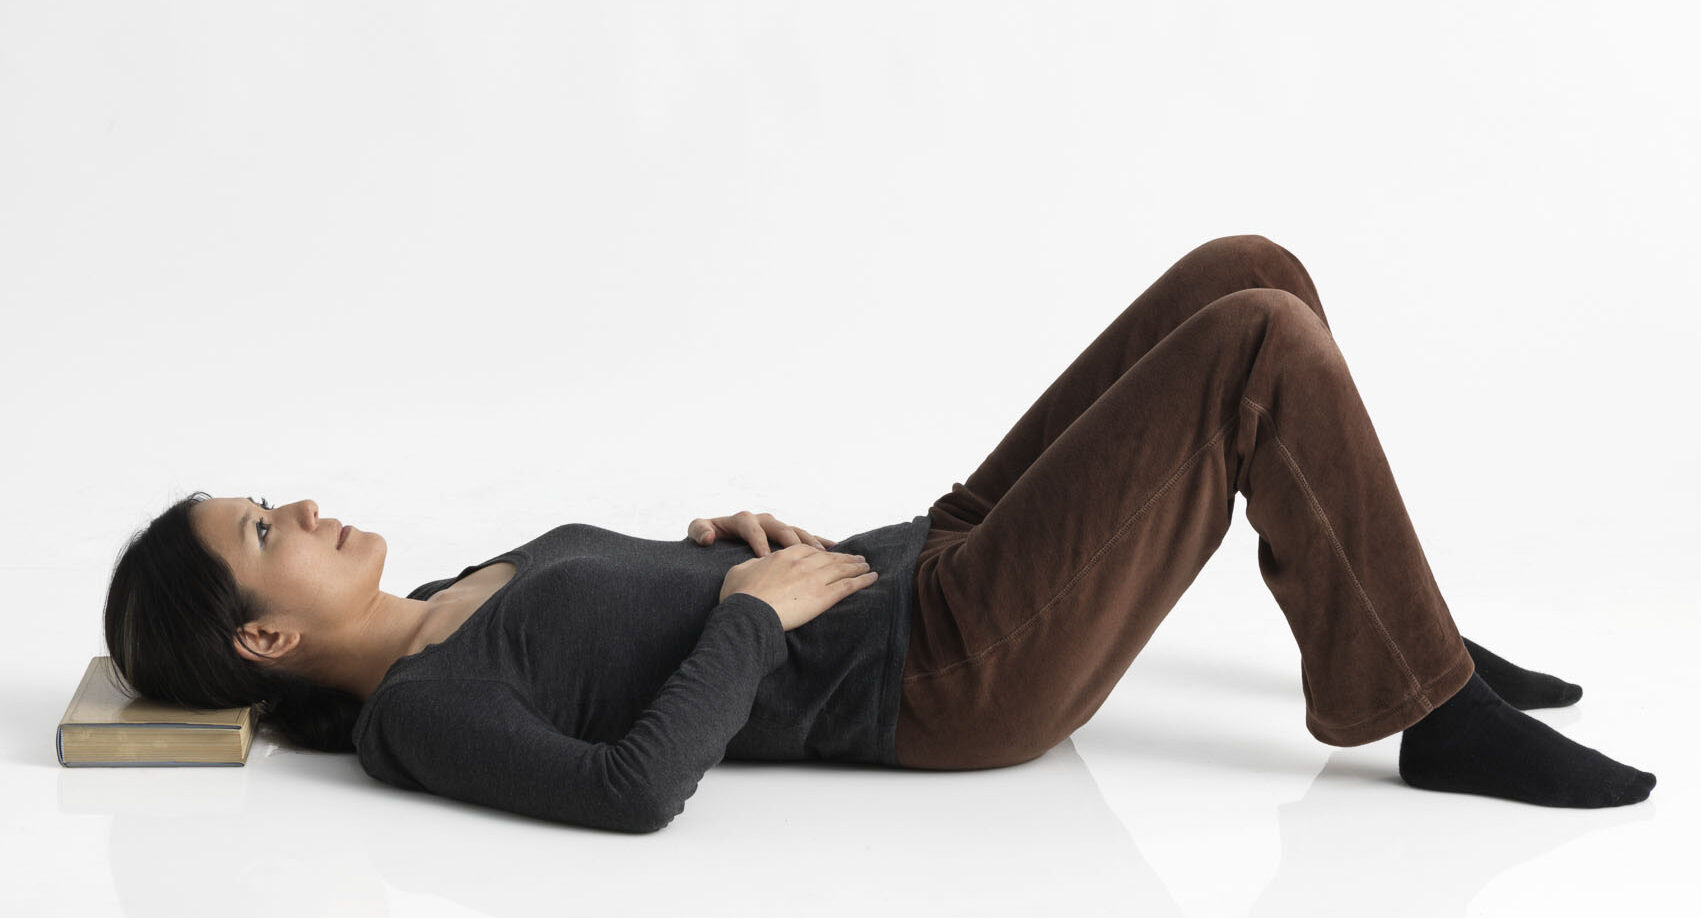 woman lying down on back, head on books, knees bent, feet on floor, hands on stomach